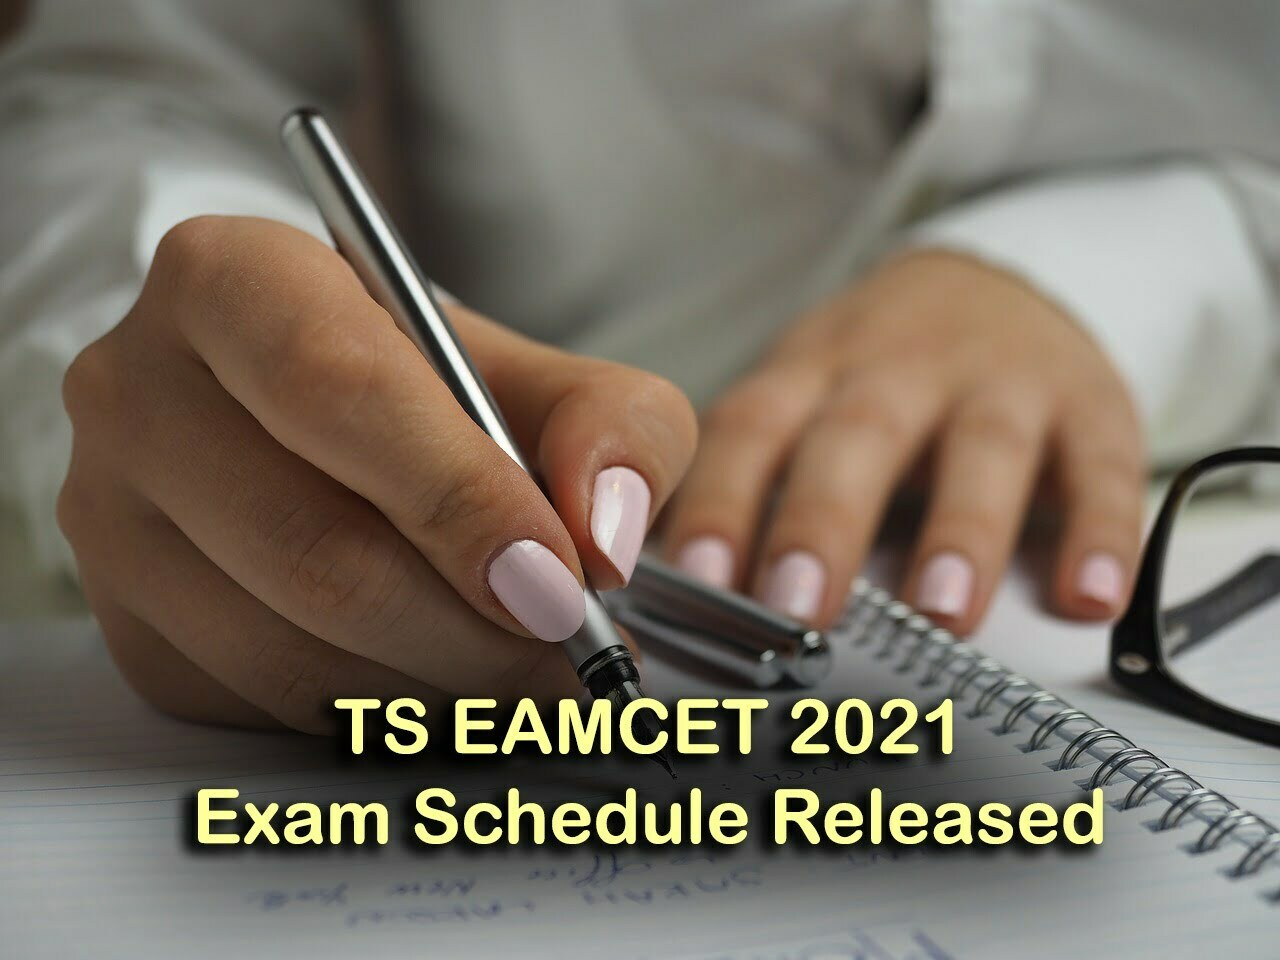 TS EAMCET 2021 Exam Schedule Released